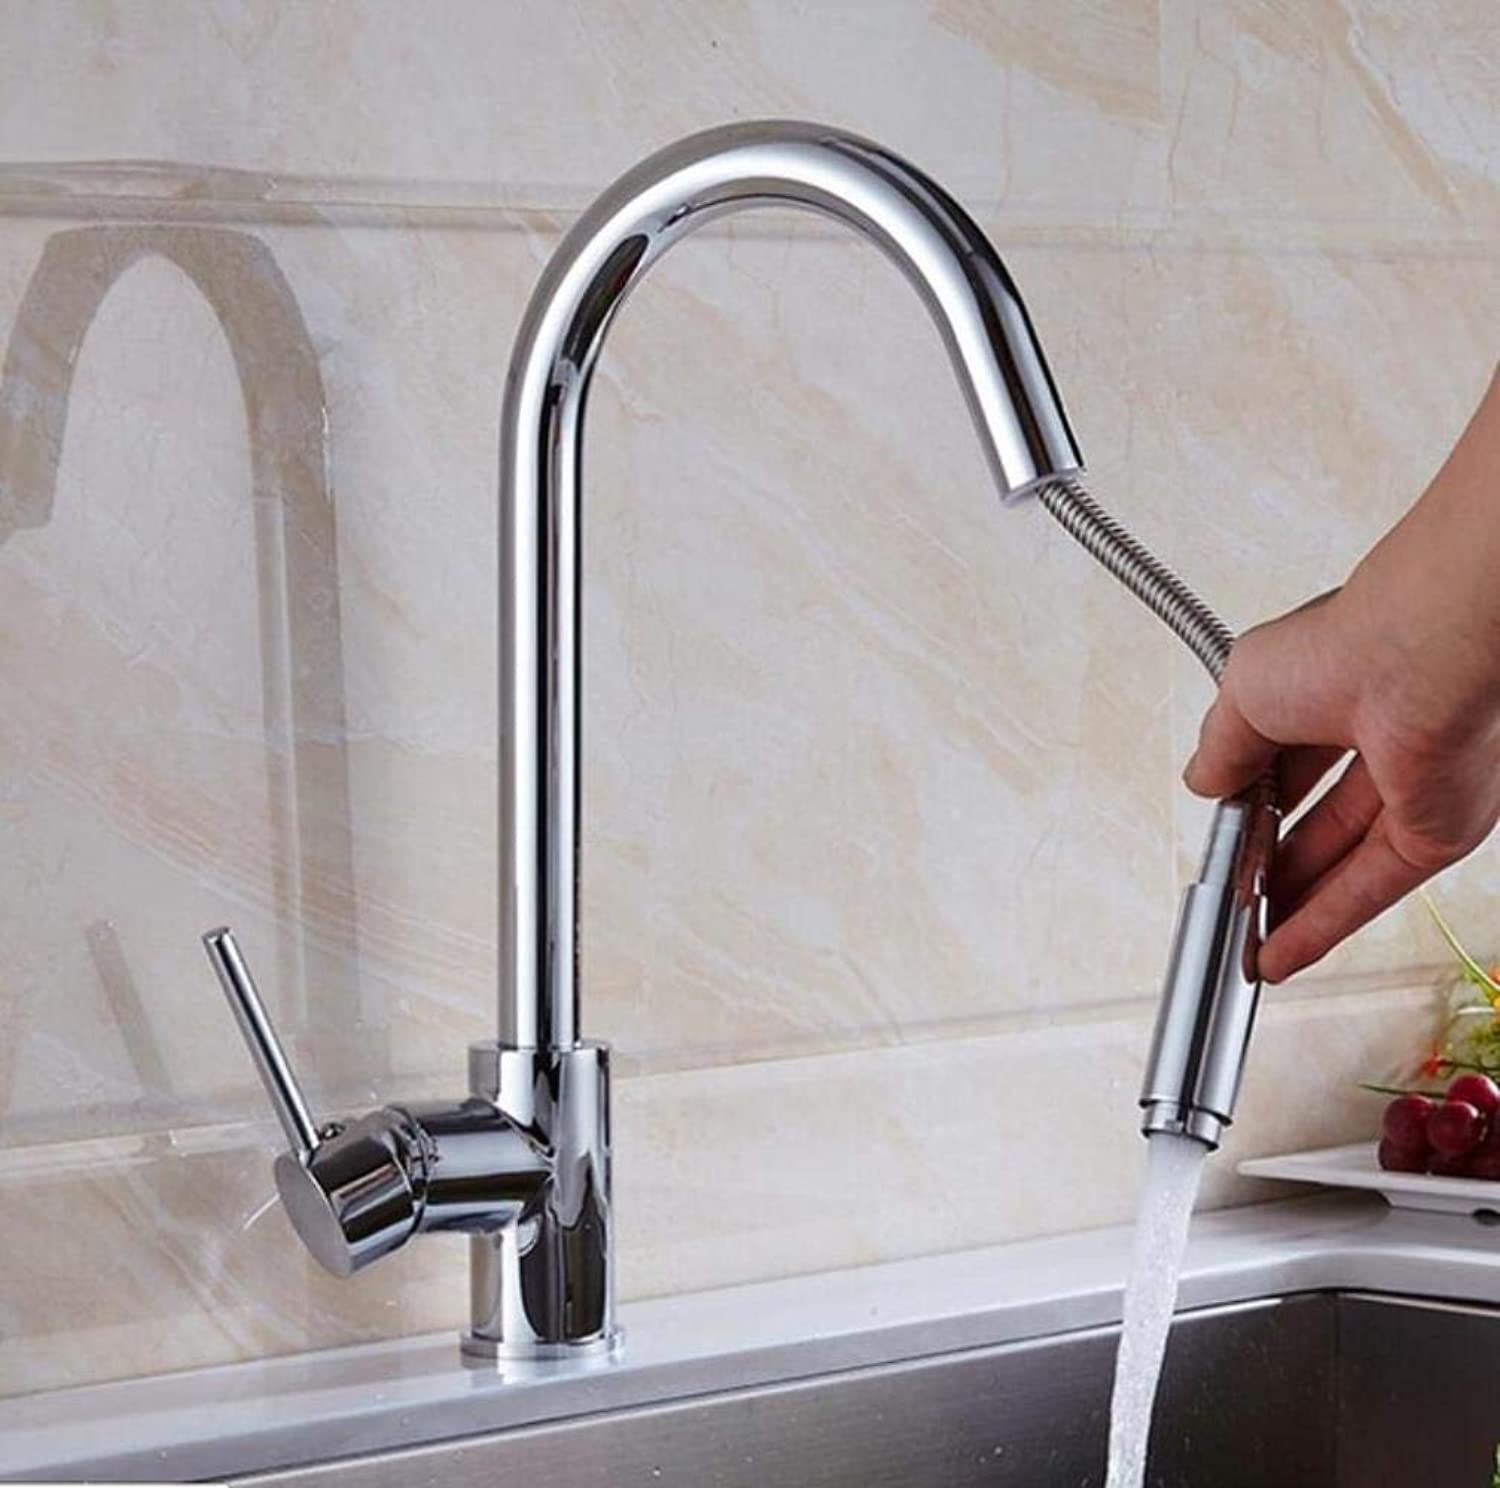 Kai&Guo Pull Out Kitchen Faucet gold Chrome black Brushed Sink Mixer Tap 360 degree redation kitchen mixer taps Kitchen Tap,chrome